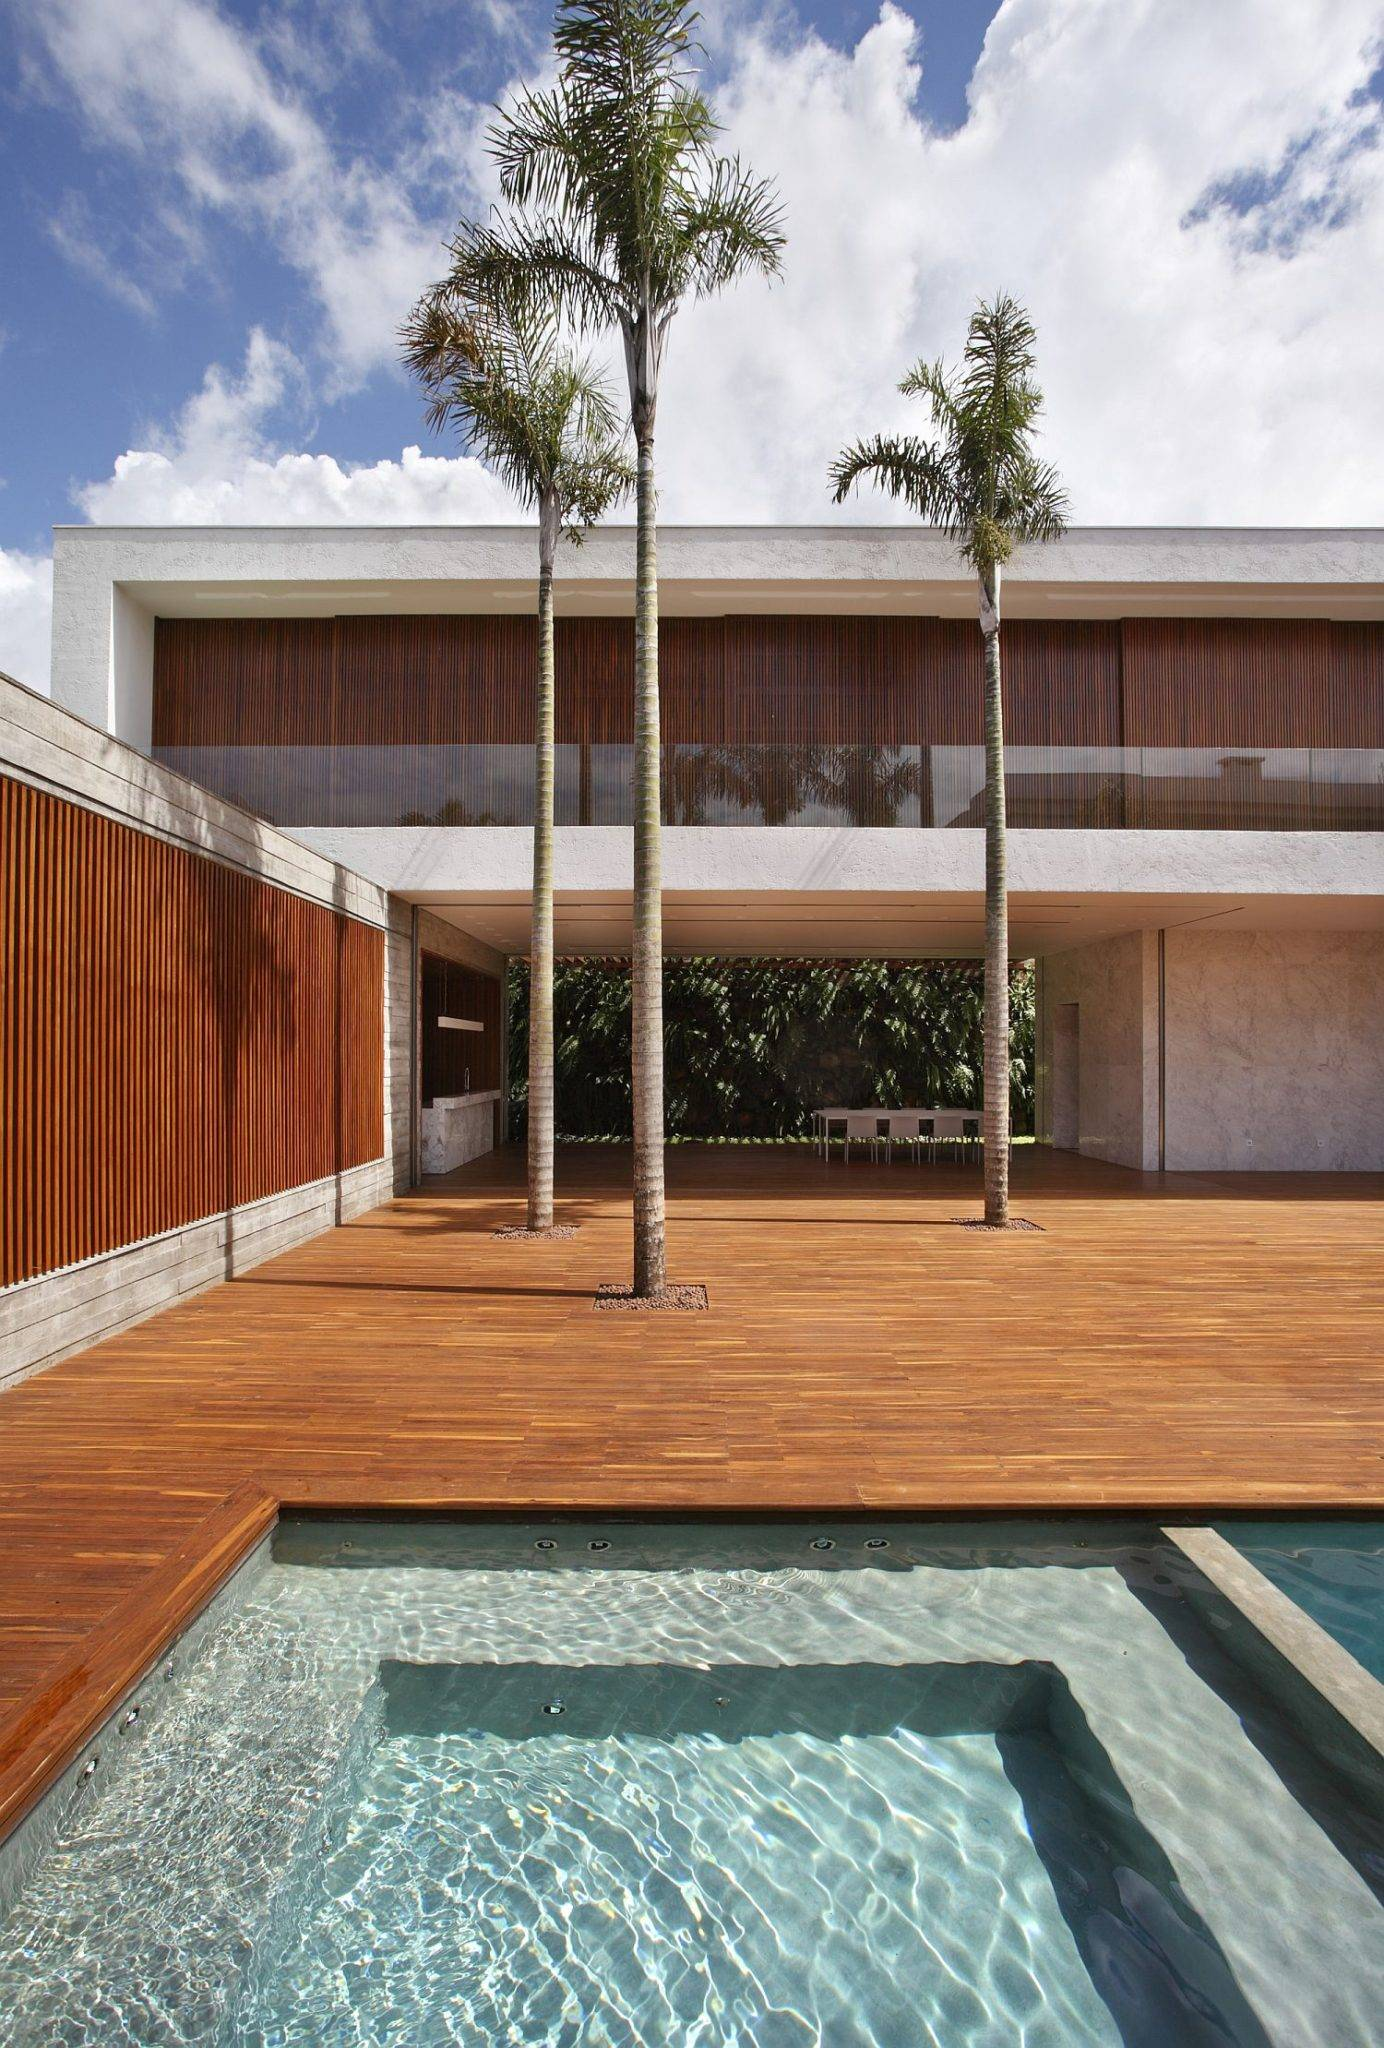 Timber-slats-shade-and-blinds-protect-this-Brazilian-home-from-direct-sunlight-39155